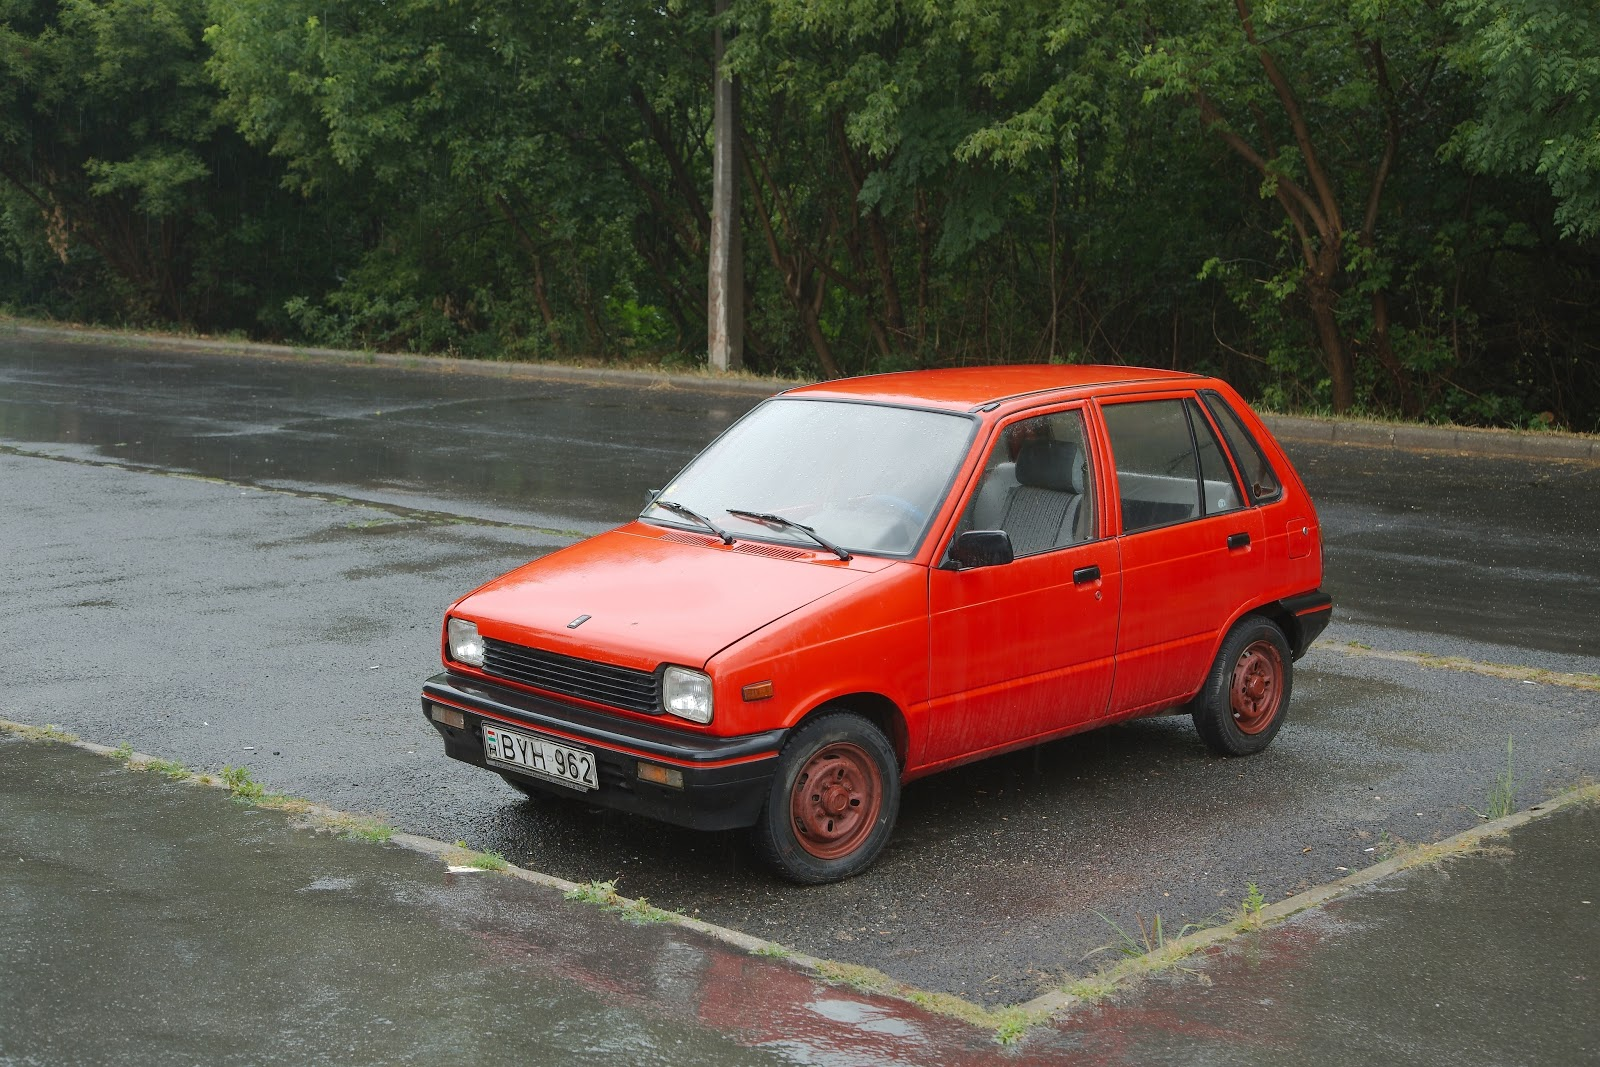 budapest-hungary-may-old-maruti-parked-in-the-street-in-rainy-weather-popular